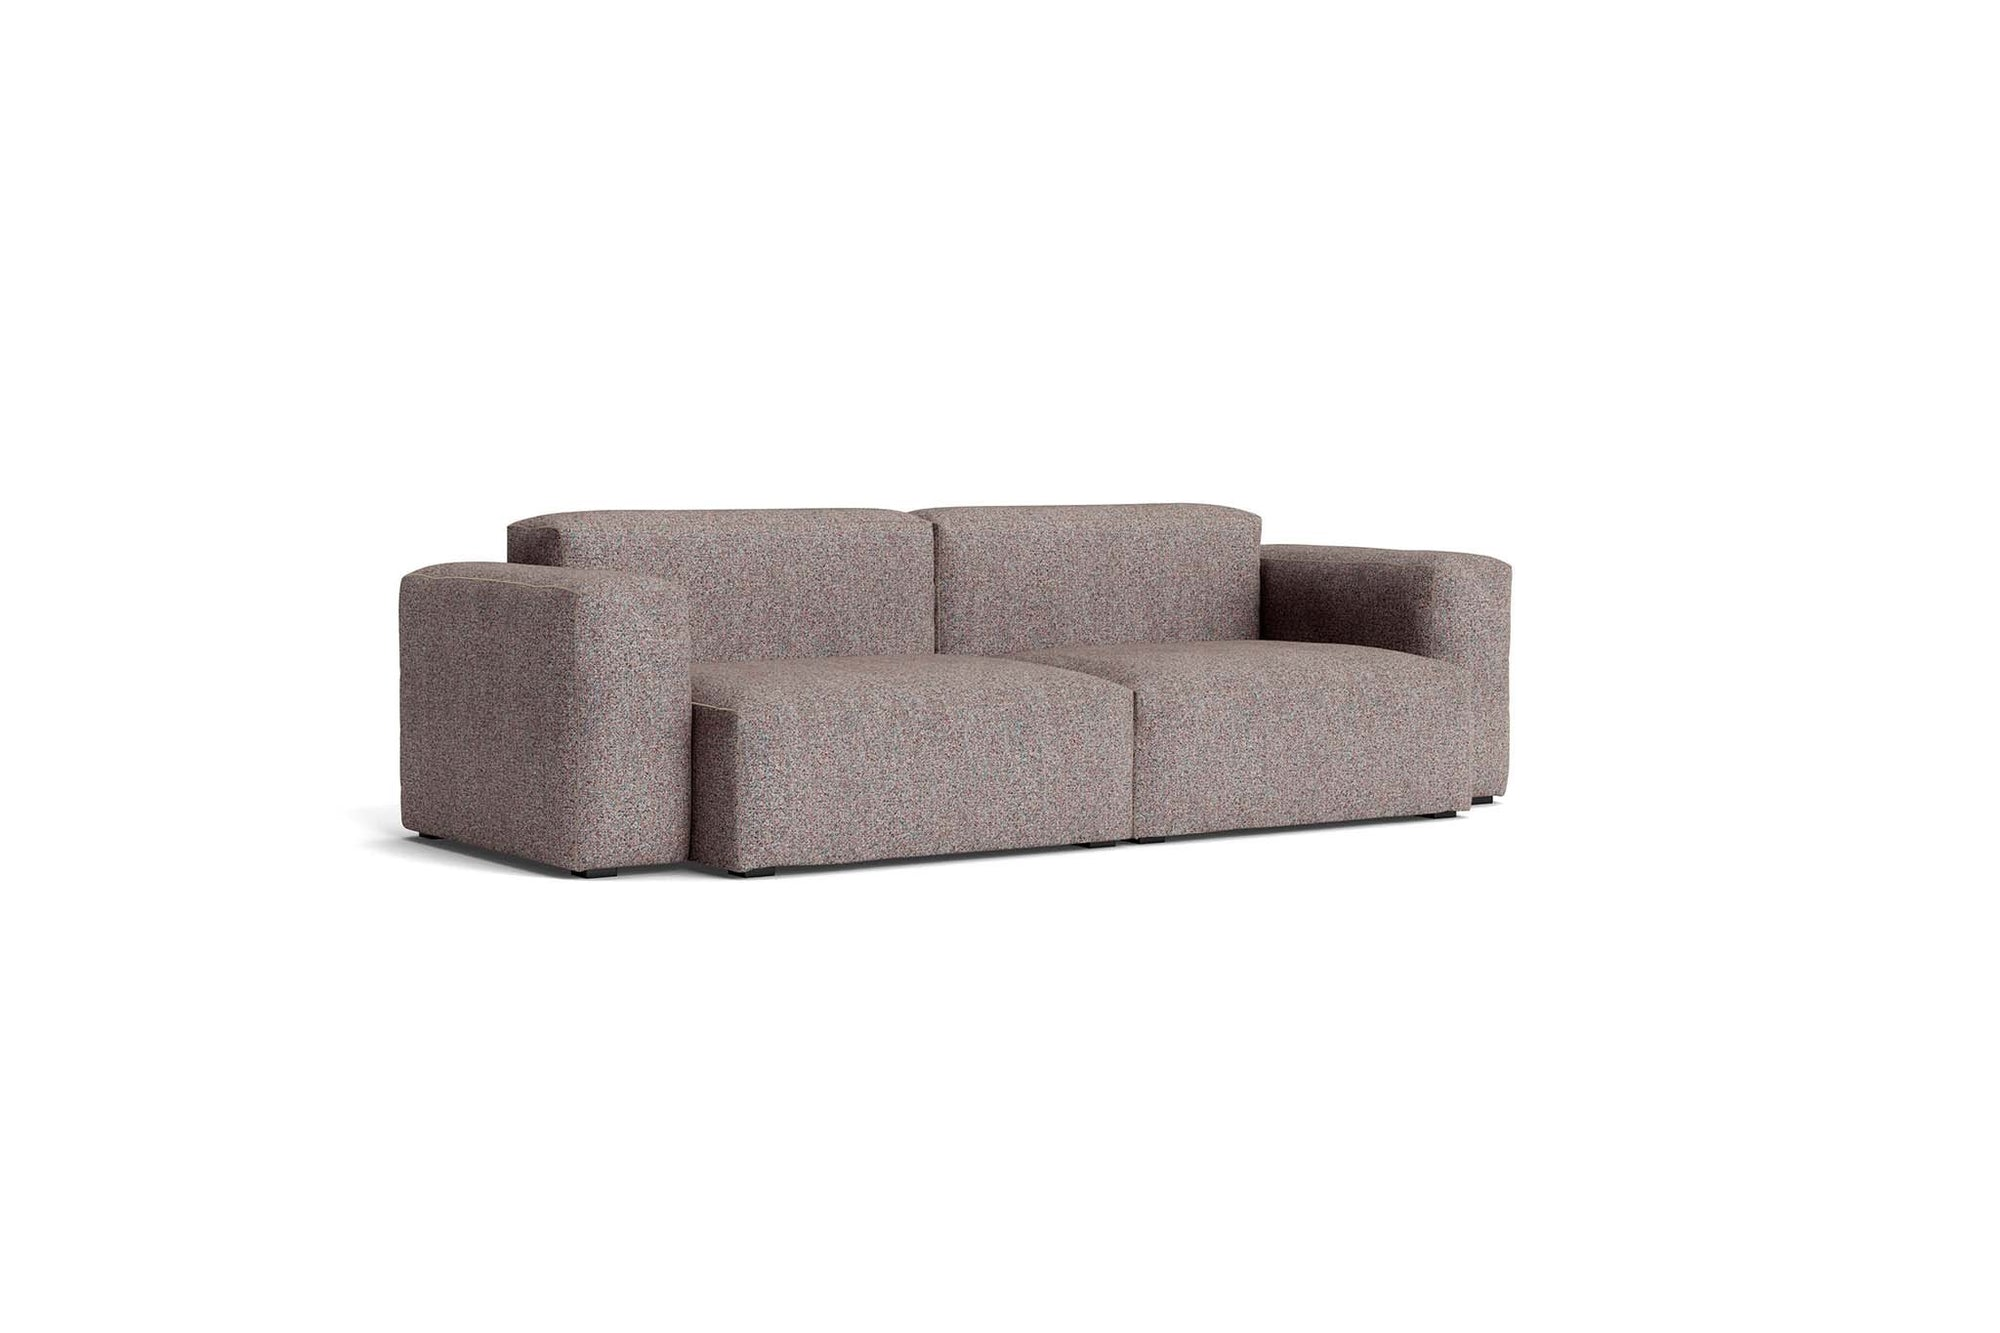 HAY - Mags Soft Low Armrest Sofa - 2.5 Seater - Combination 1